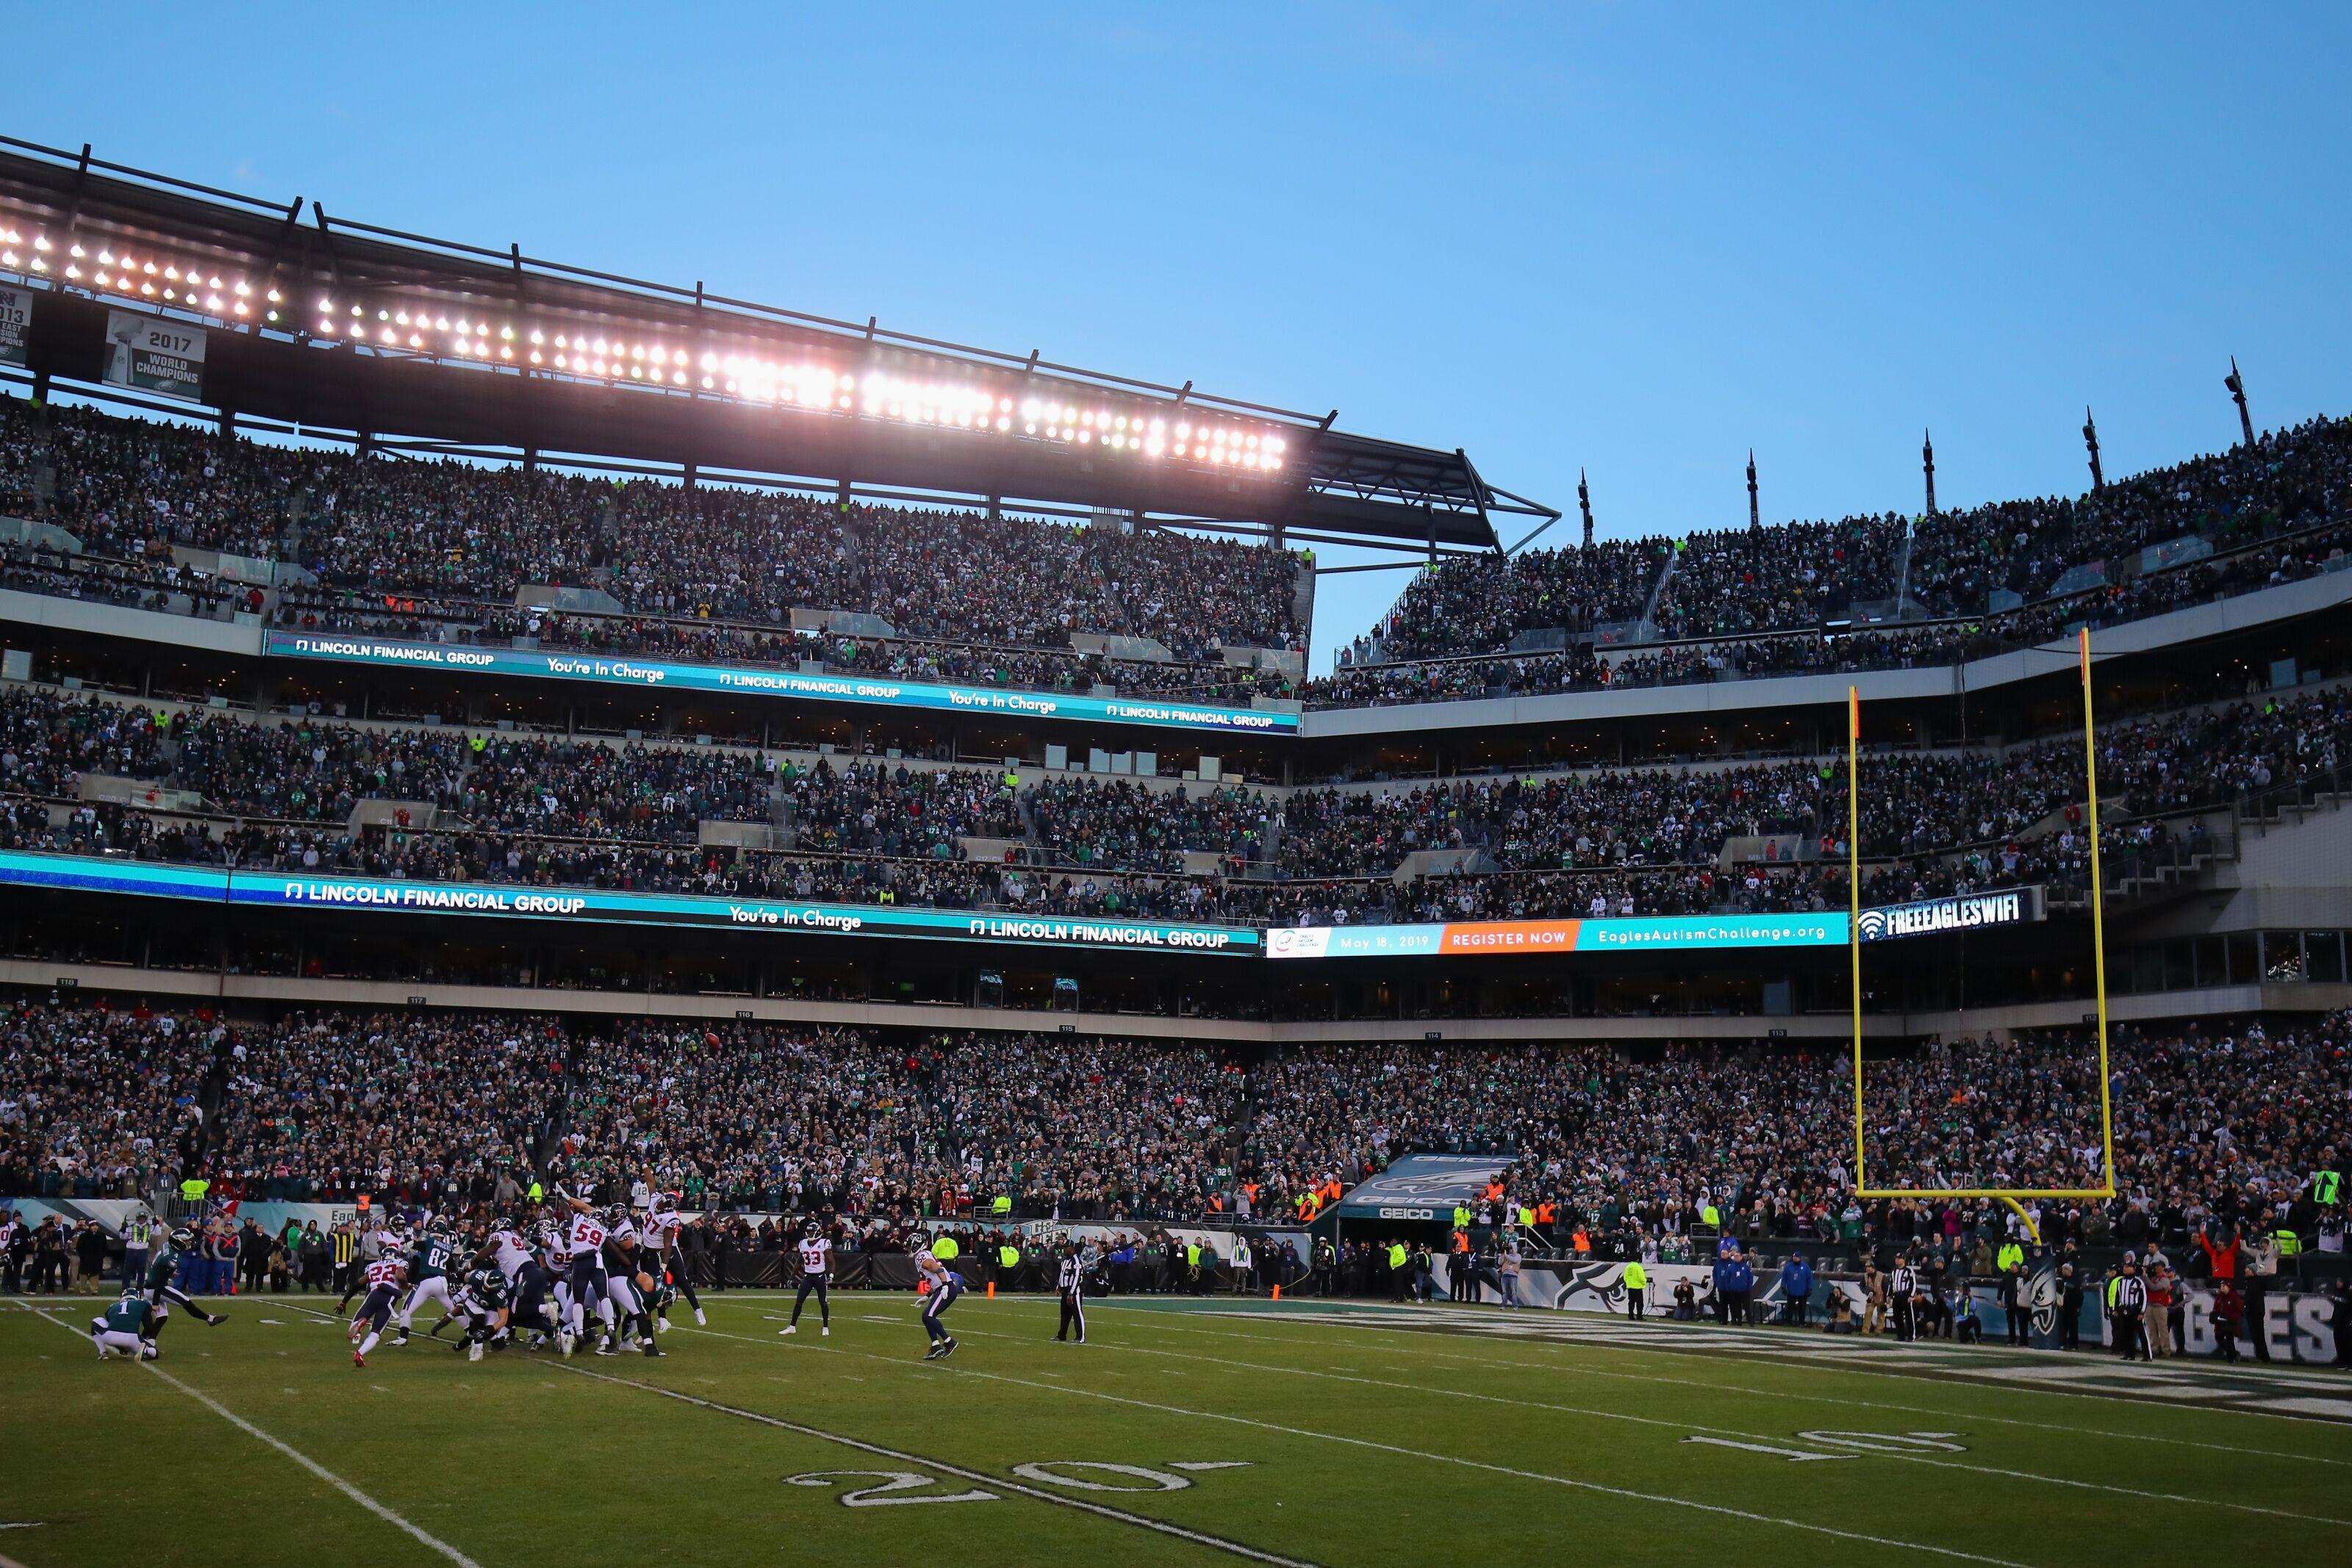 Local artist showcases talent at 2nd annual Philadelphia Eagles Autism Challenge